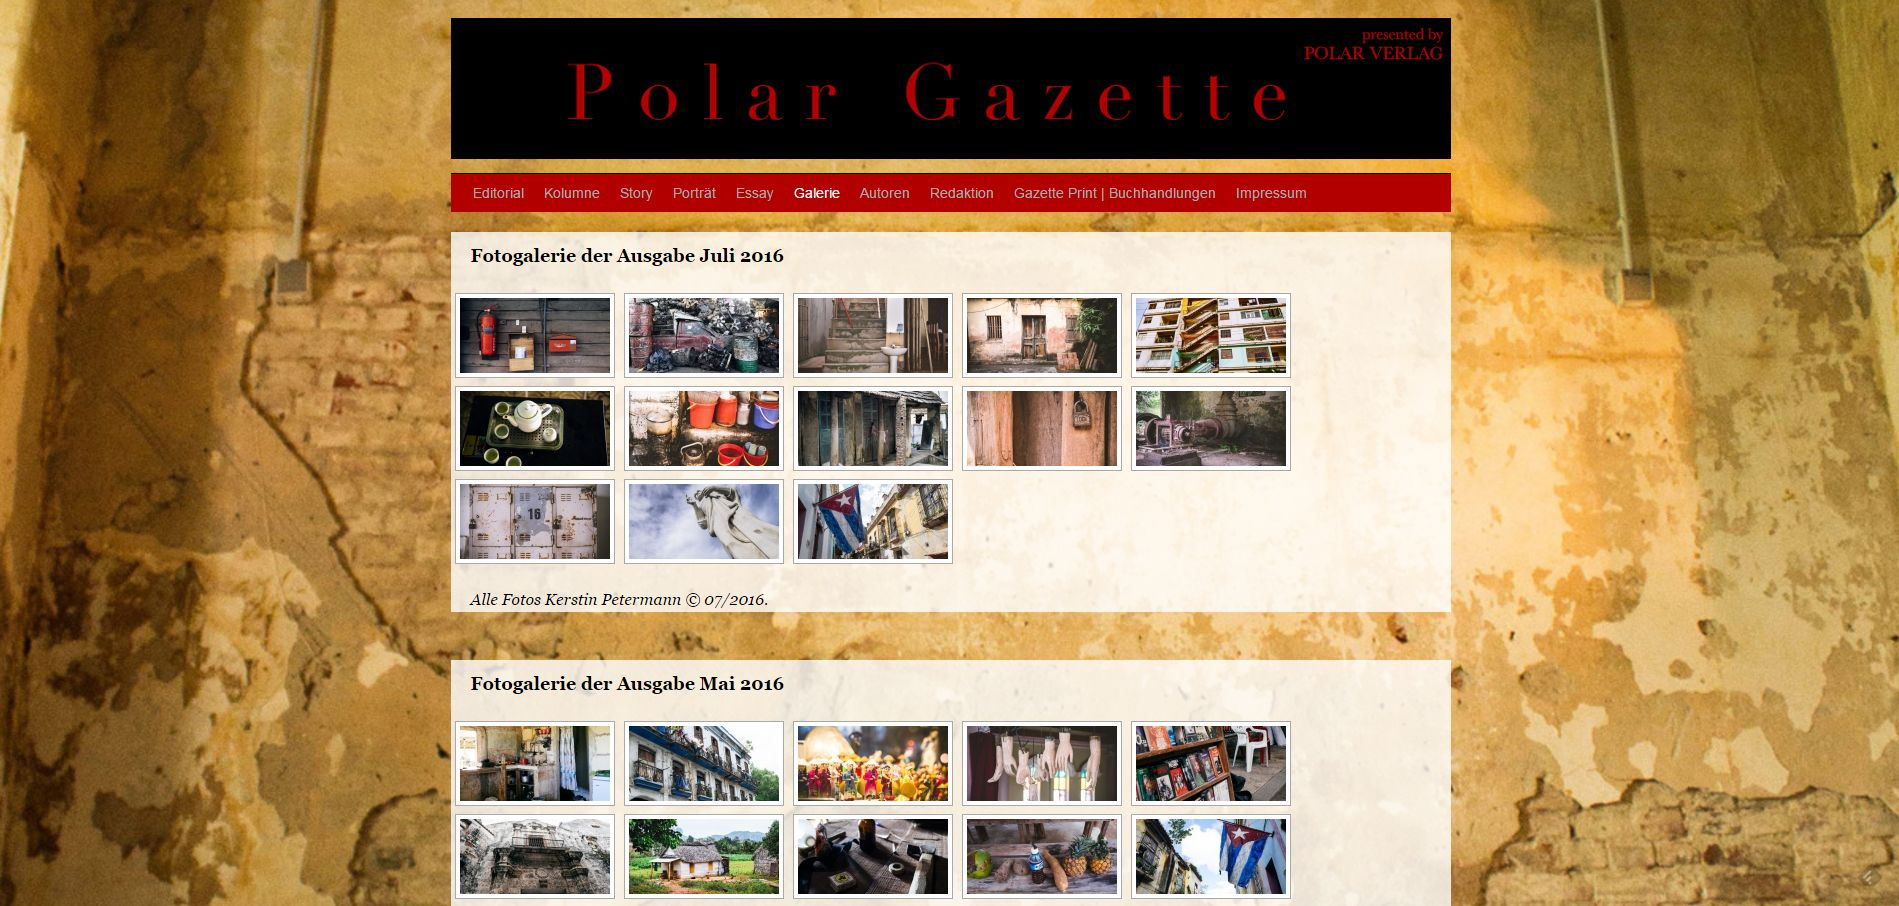 polar-gazette-blog.jpg